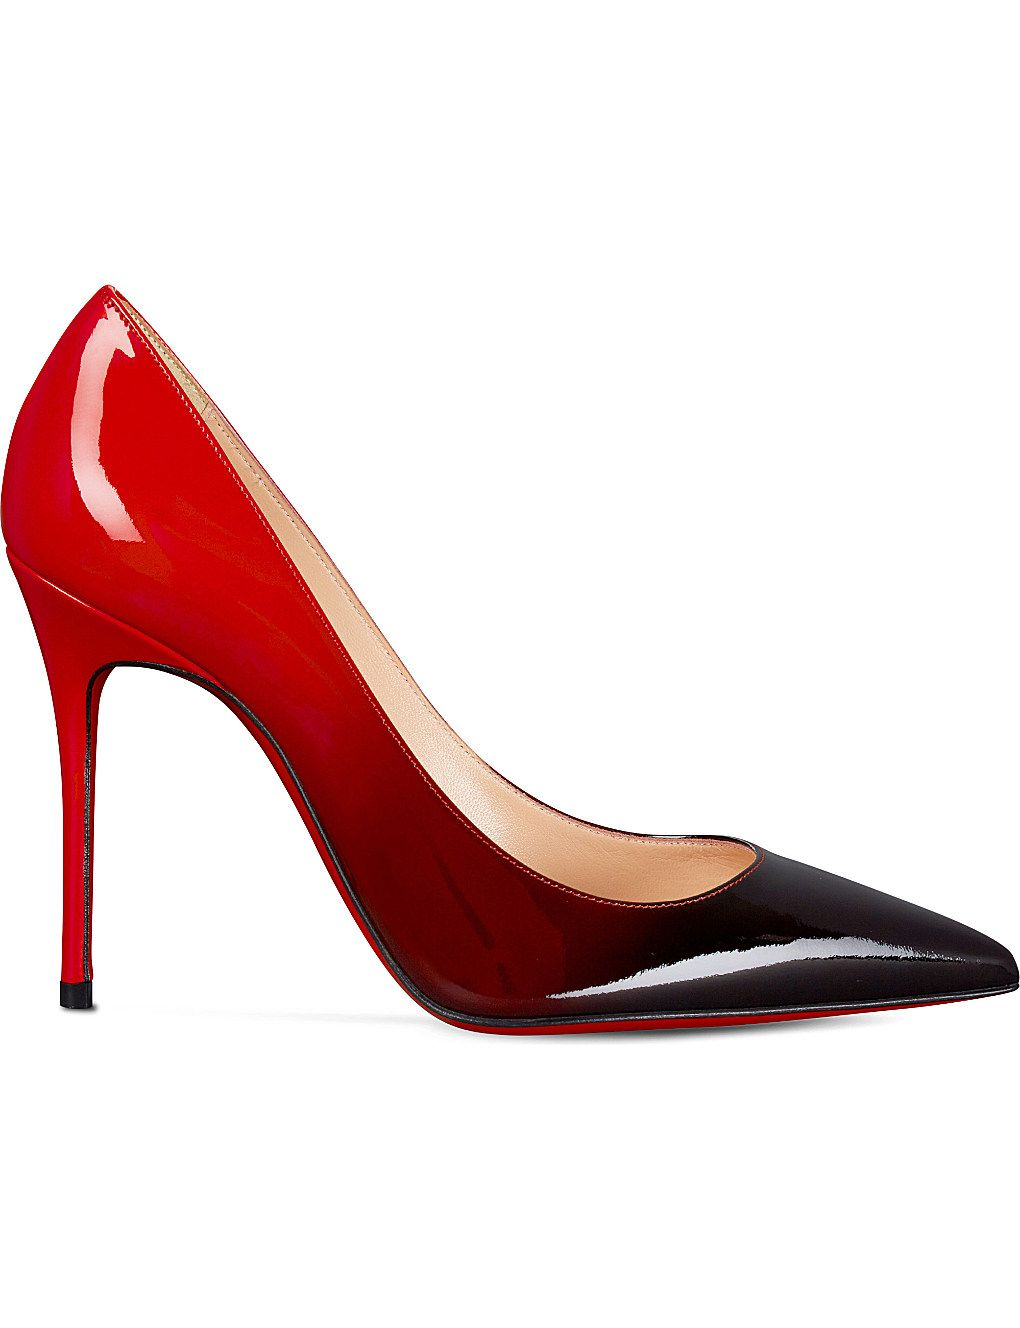 68964a42d10 Kate 100 patent degrade | Zapatos | Christian louboutin, Shoes, Heels